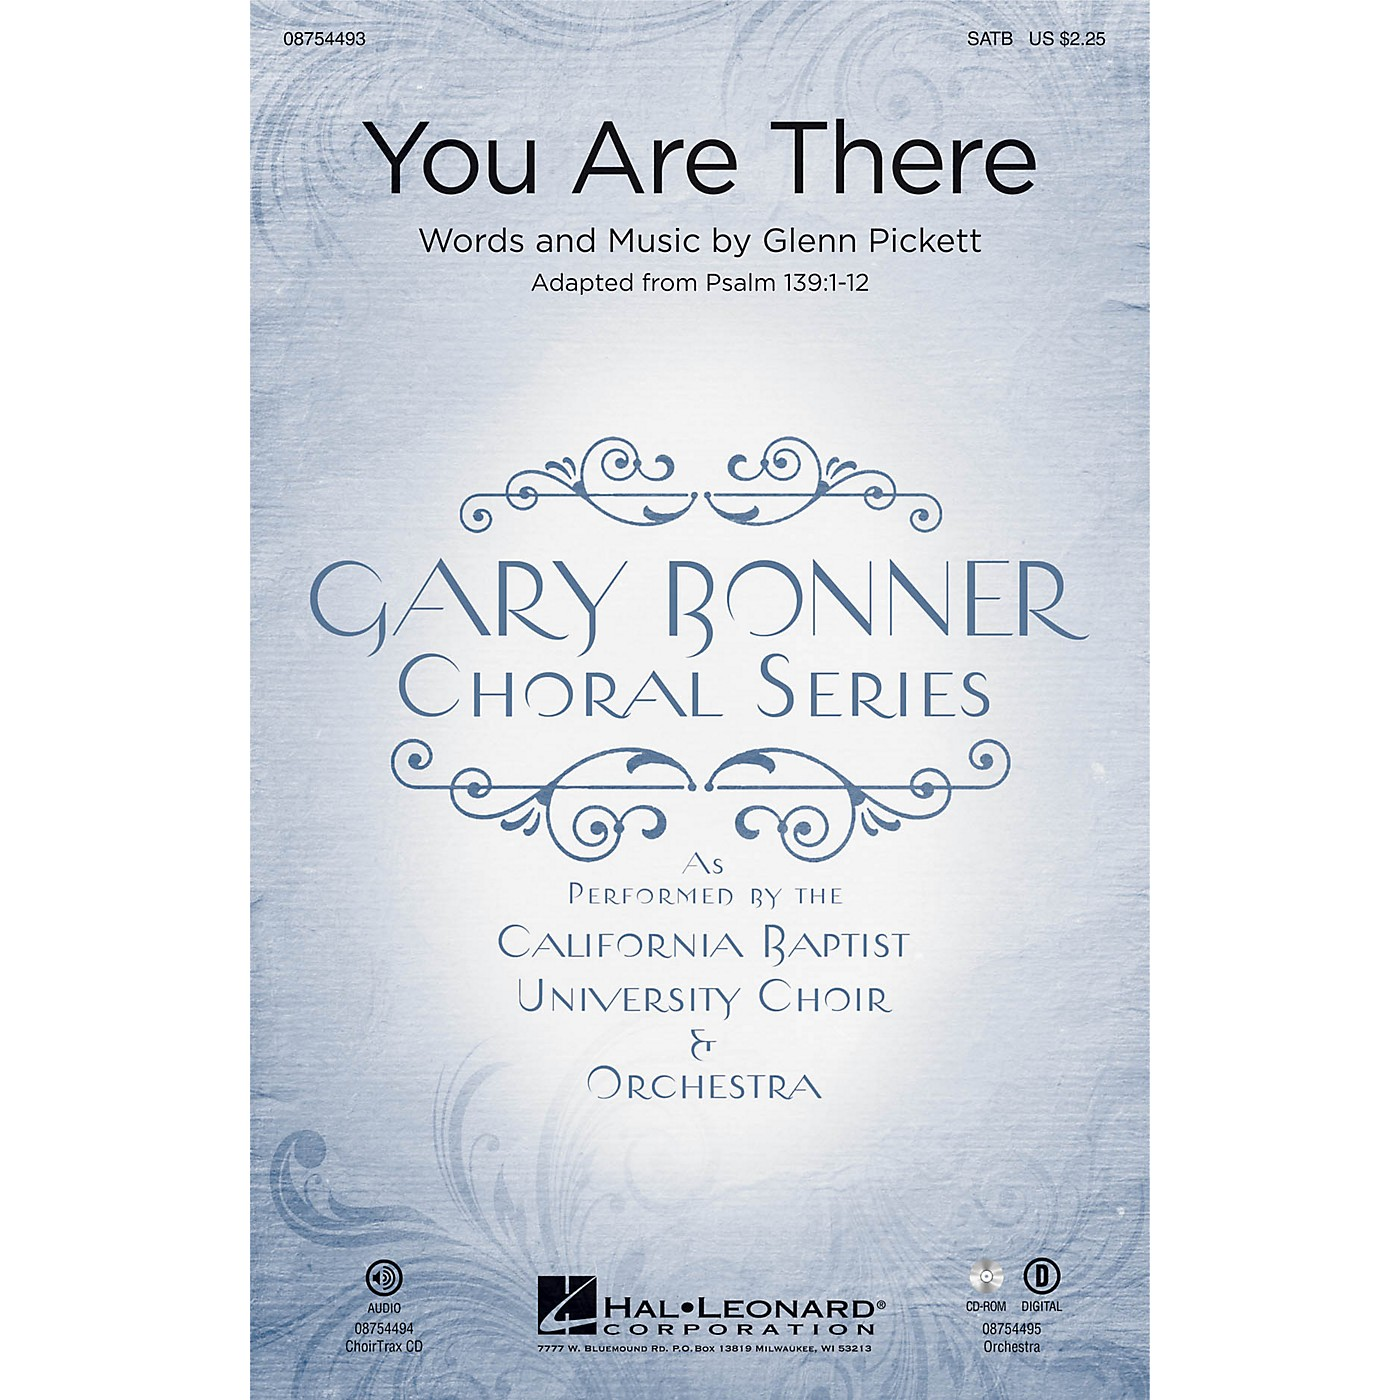 Hal Leonard You Are There (Gary Bonner Choral Series) SATB Divisi composed by Glenn A. Pickett thumbnail